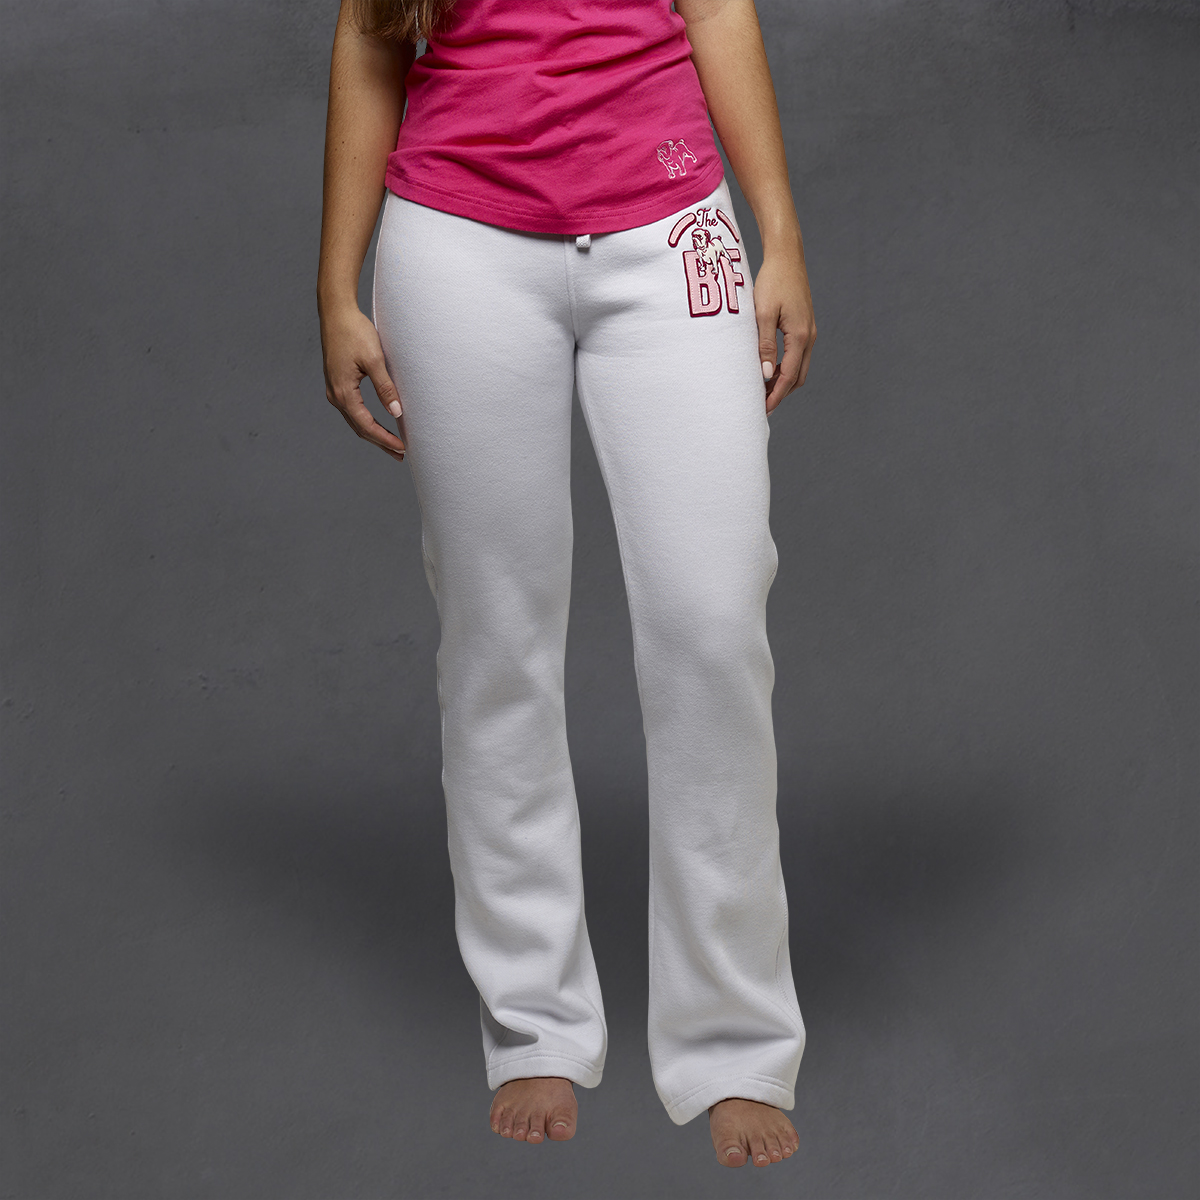 Girls Heritage Sweatpants - White